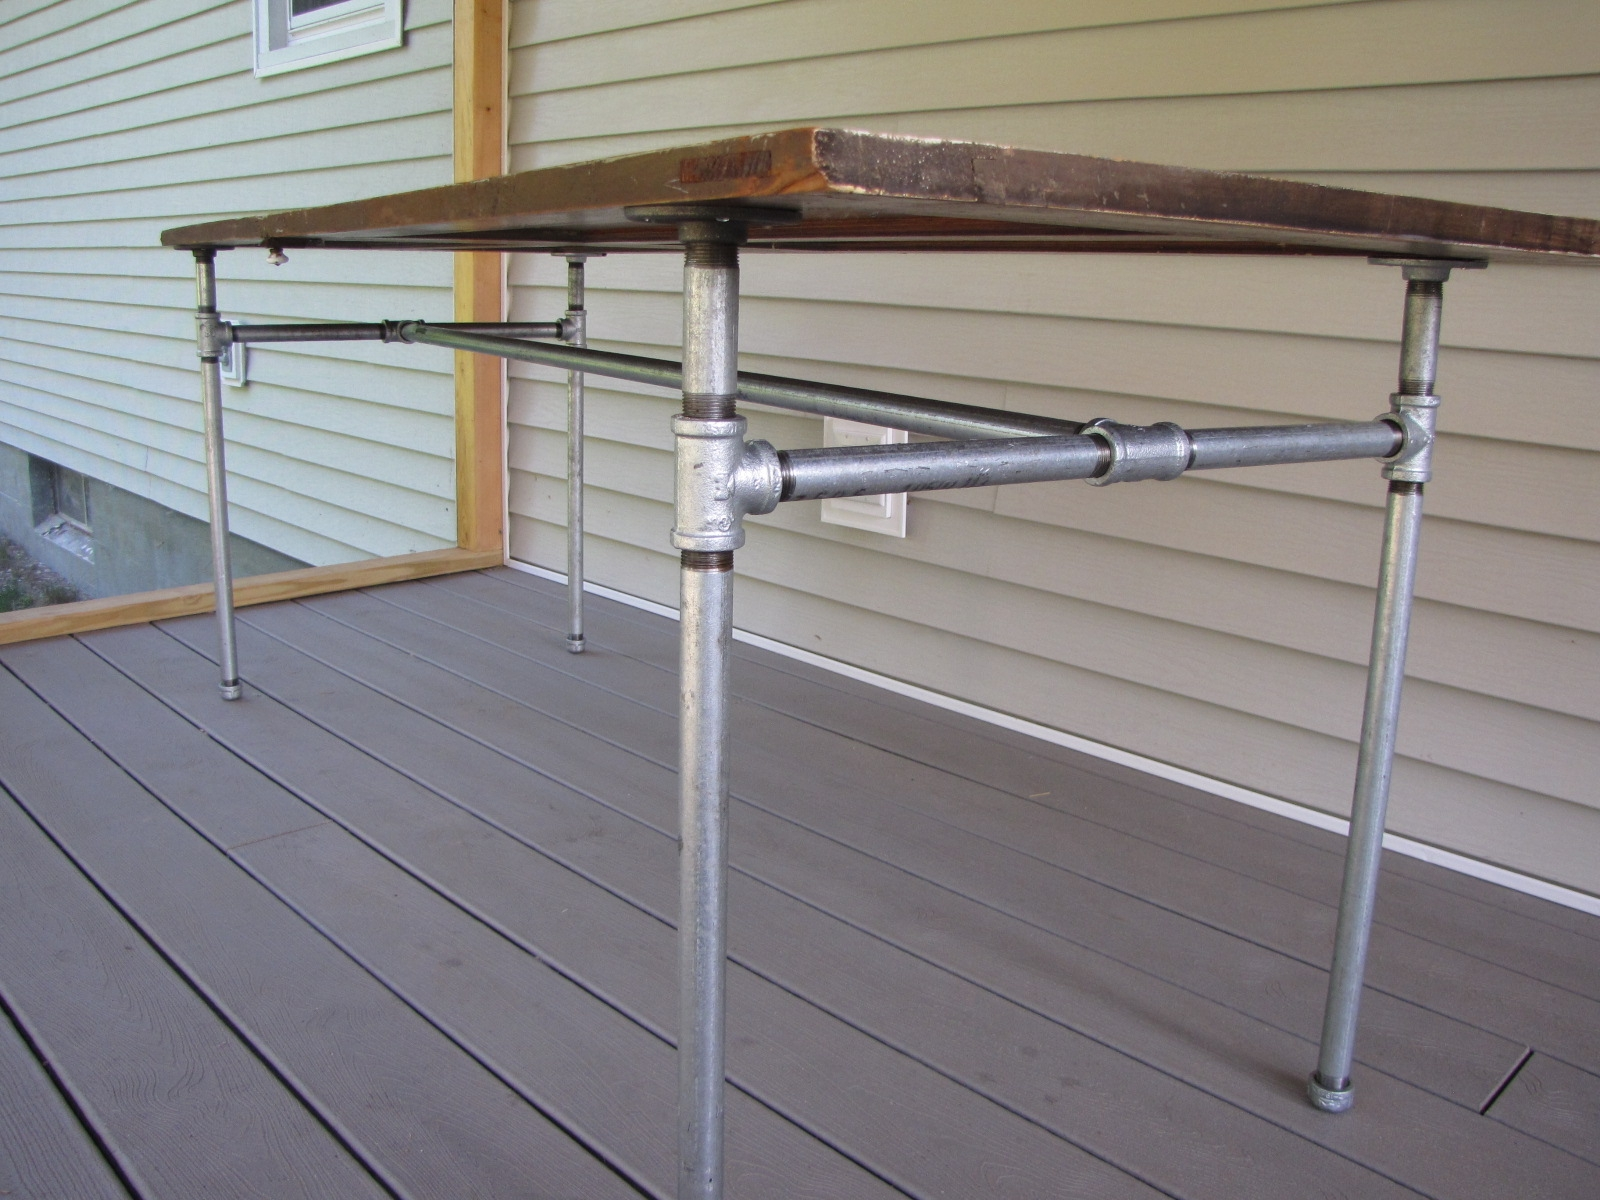 Diy Table Made From An Old Door And Galvanized Pipe   Diy Galvanized Pipe Handrail   Simple Pipe   Water Pipe   Paint Pipe   Galvanized Balustrade Steel   Outdoor Pipe